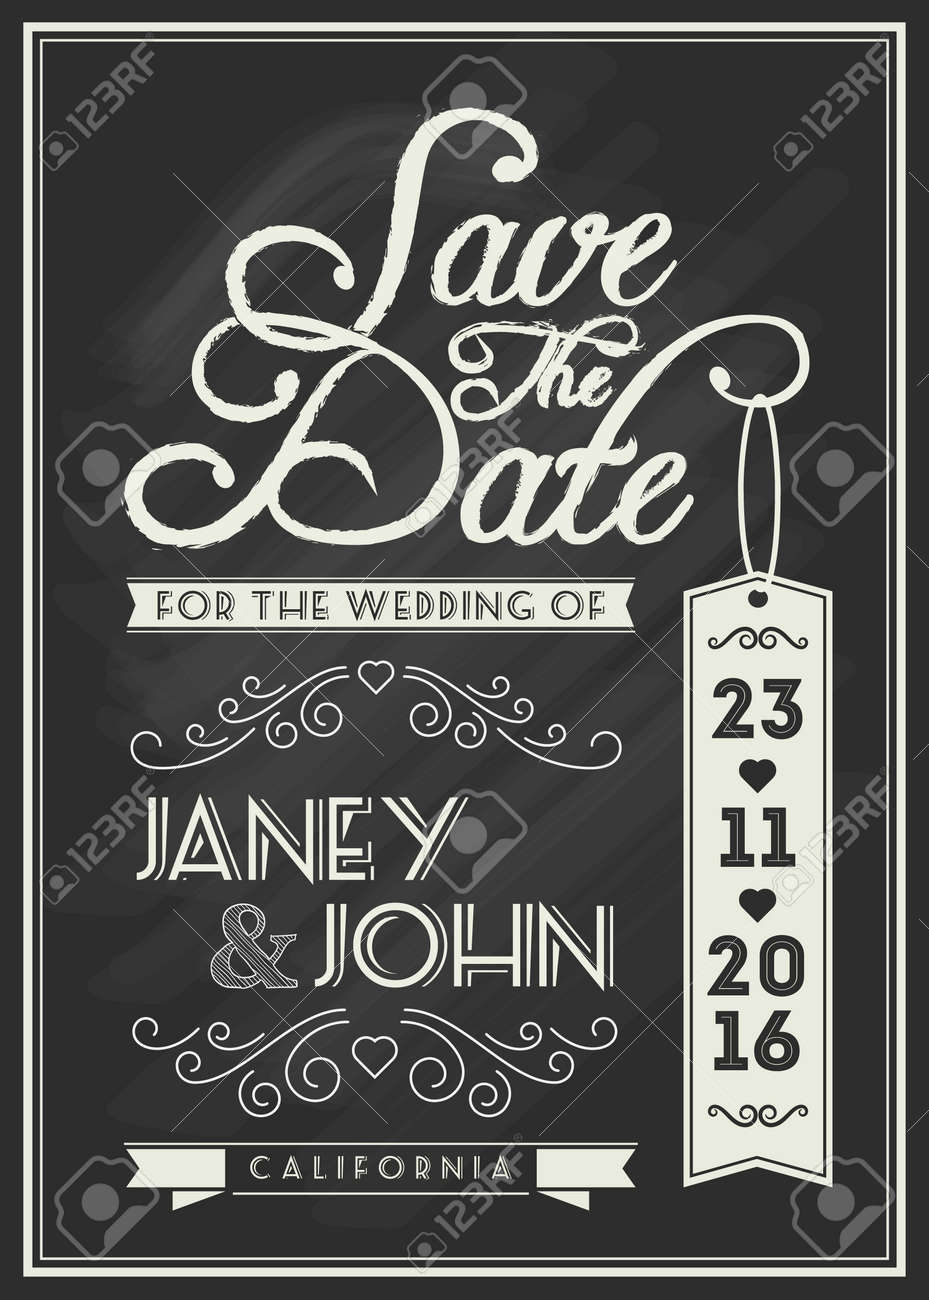 save the date card template design with typography and flourish